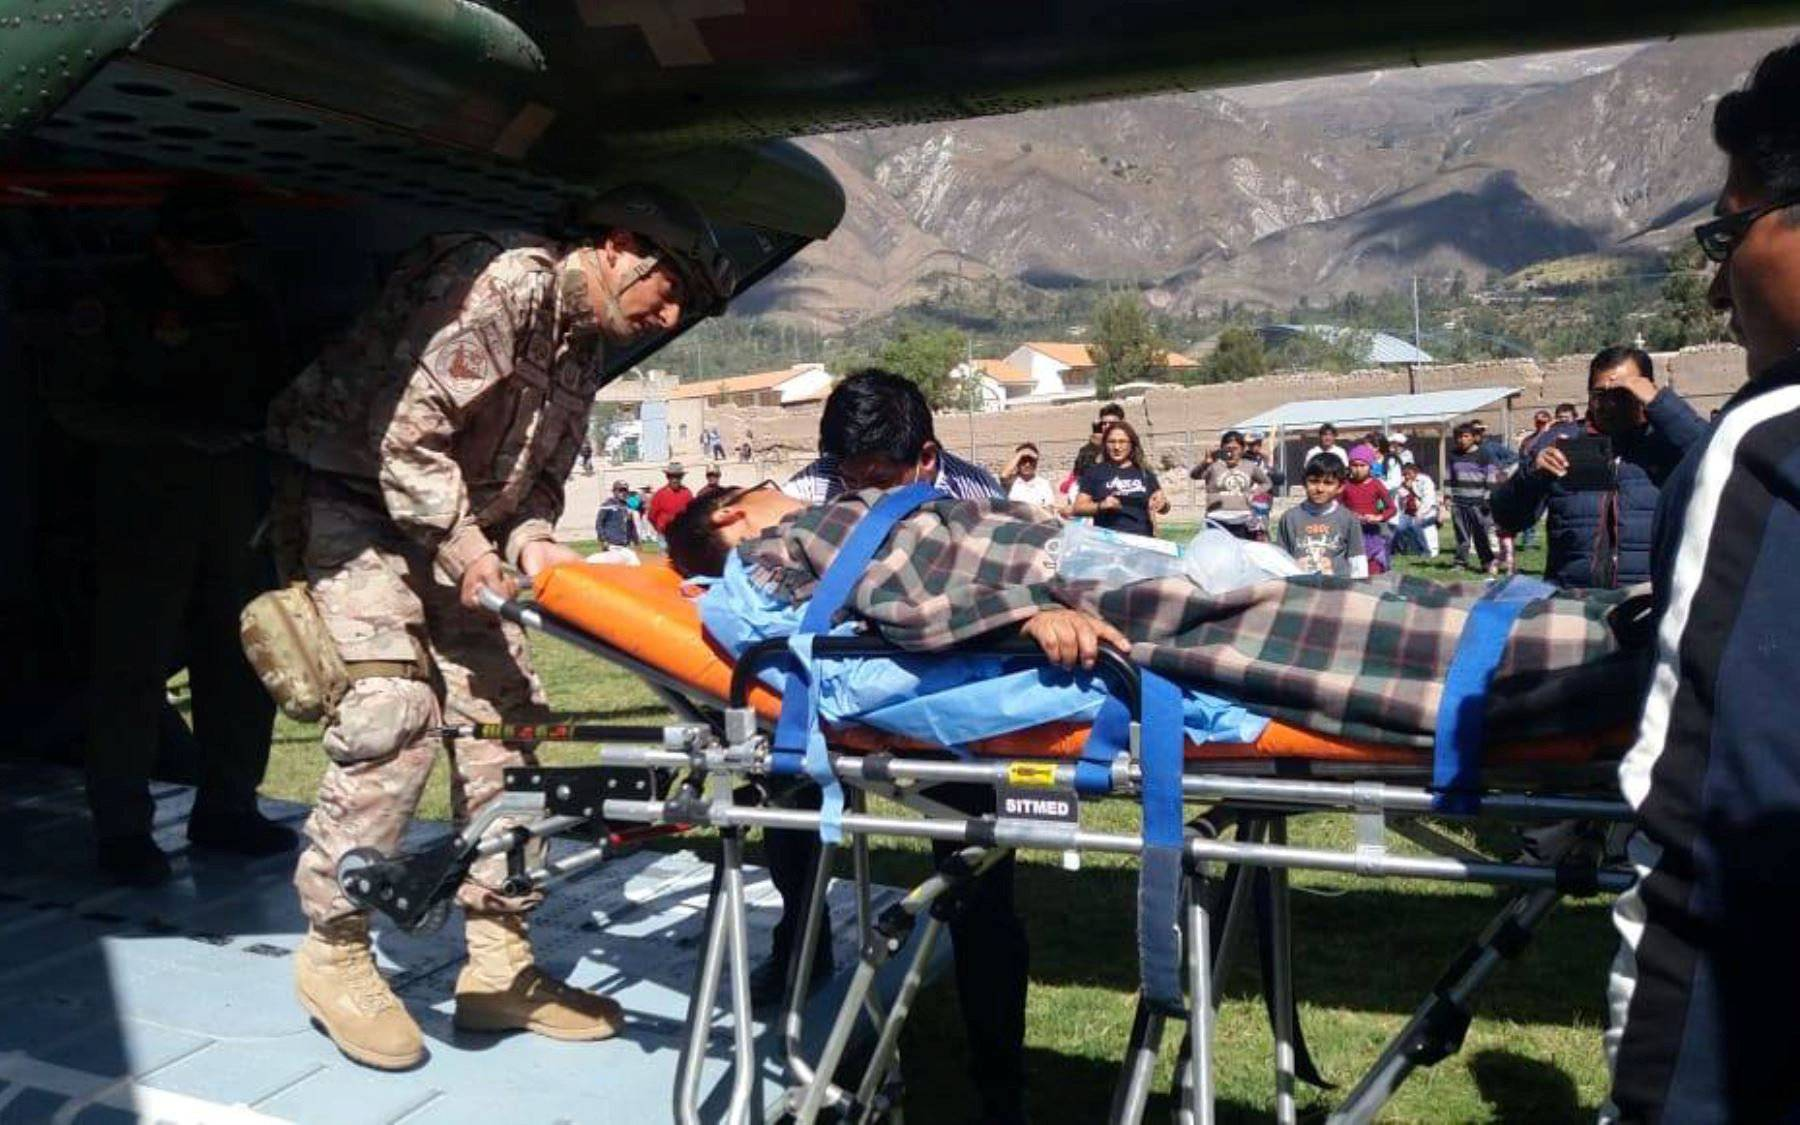 A person is transported to a helicopter after eating contaminated food at a funeral in the Peruvian Andes, in Ayacucho